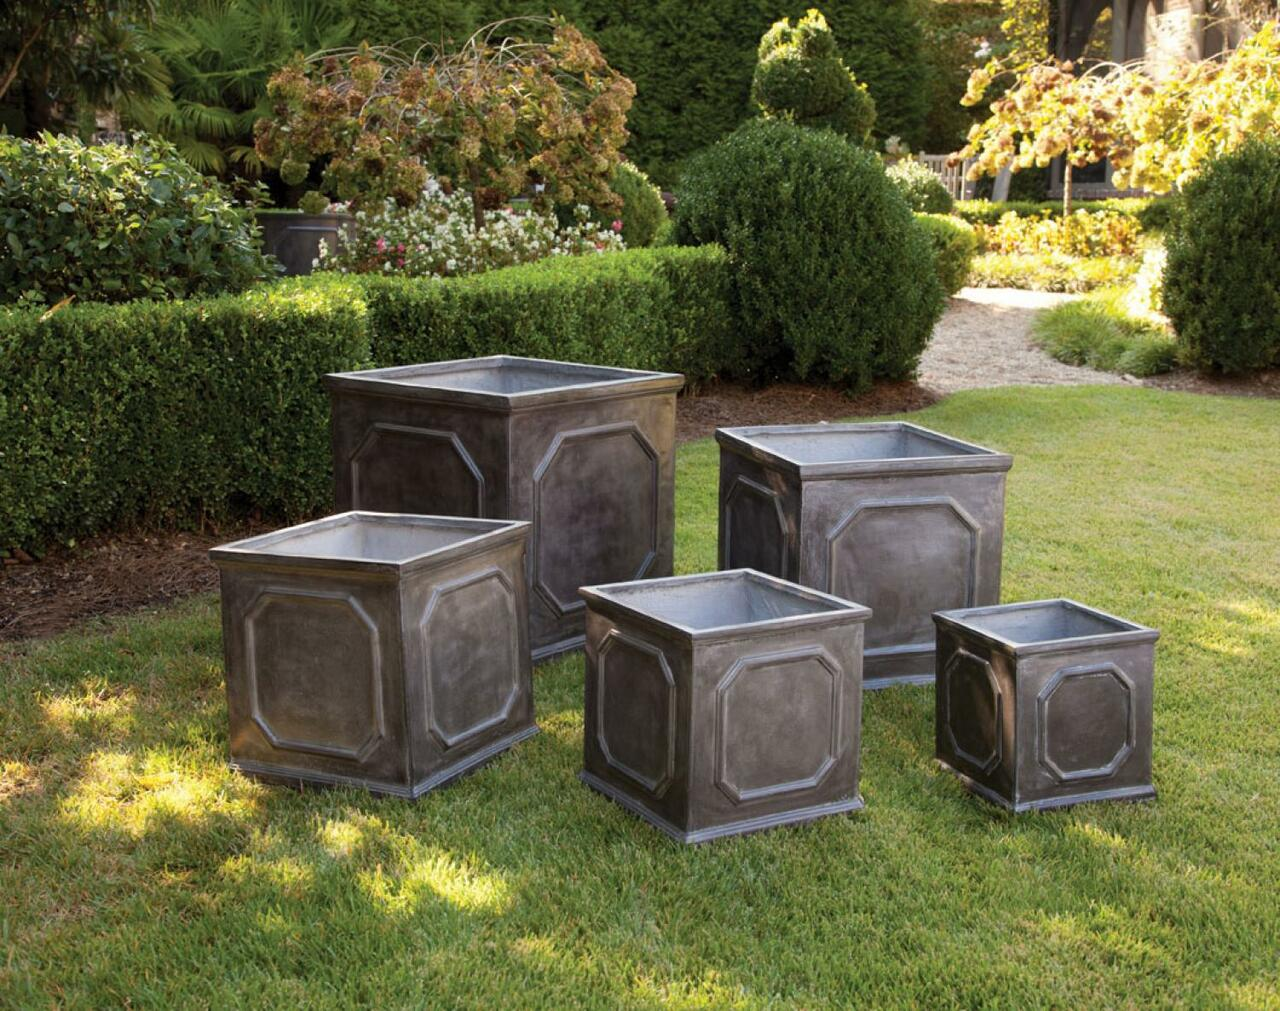 Set Of 5 Square Geometric Design Garden Planters With A Faux Lead